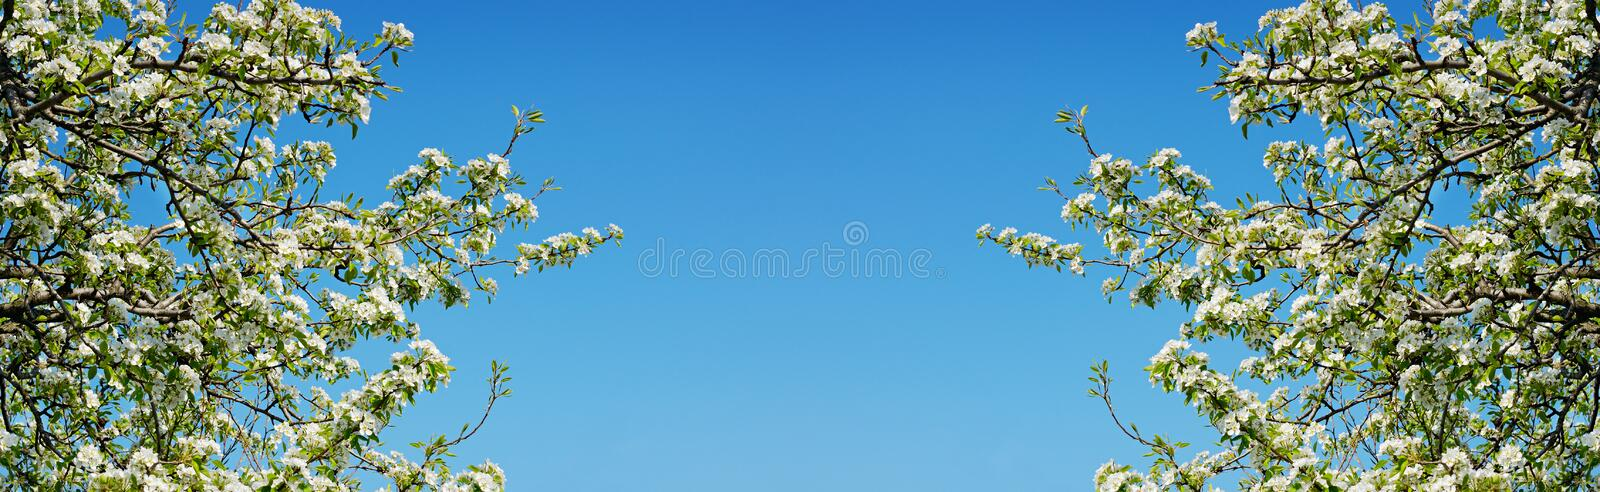 Spring branches of cherry tree with white flowers and fresh green leaves stock photography